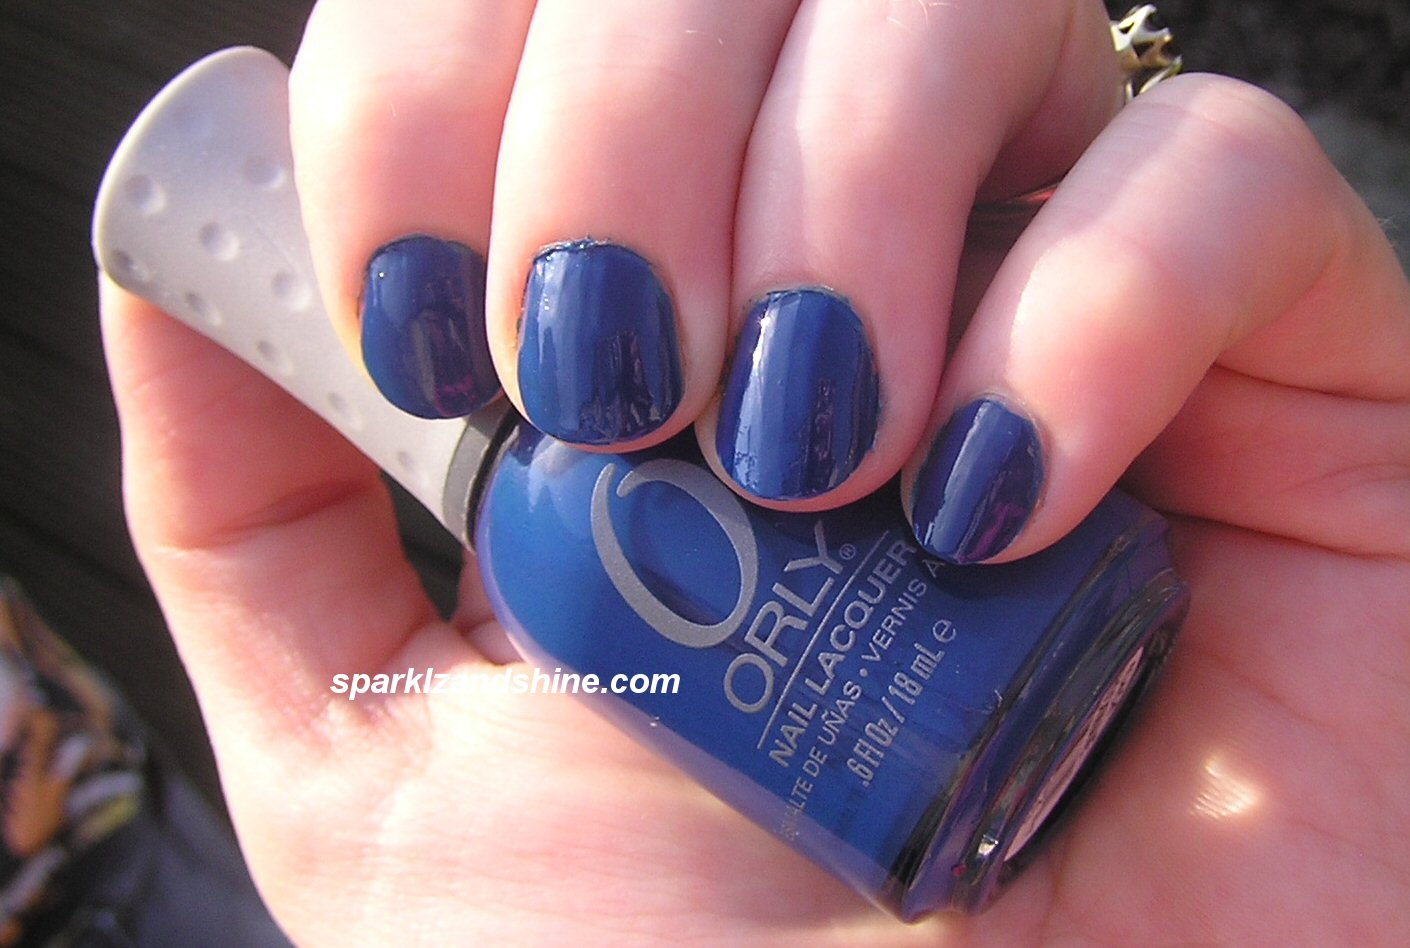 Orly Nail Polish in Shockwave - Electronica Collection